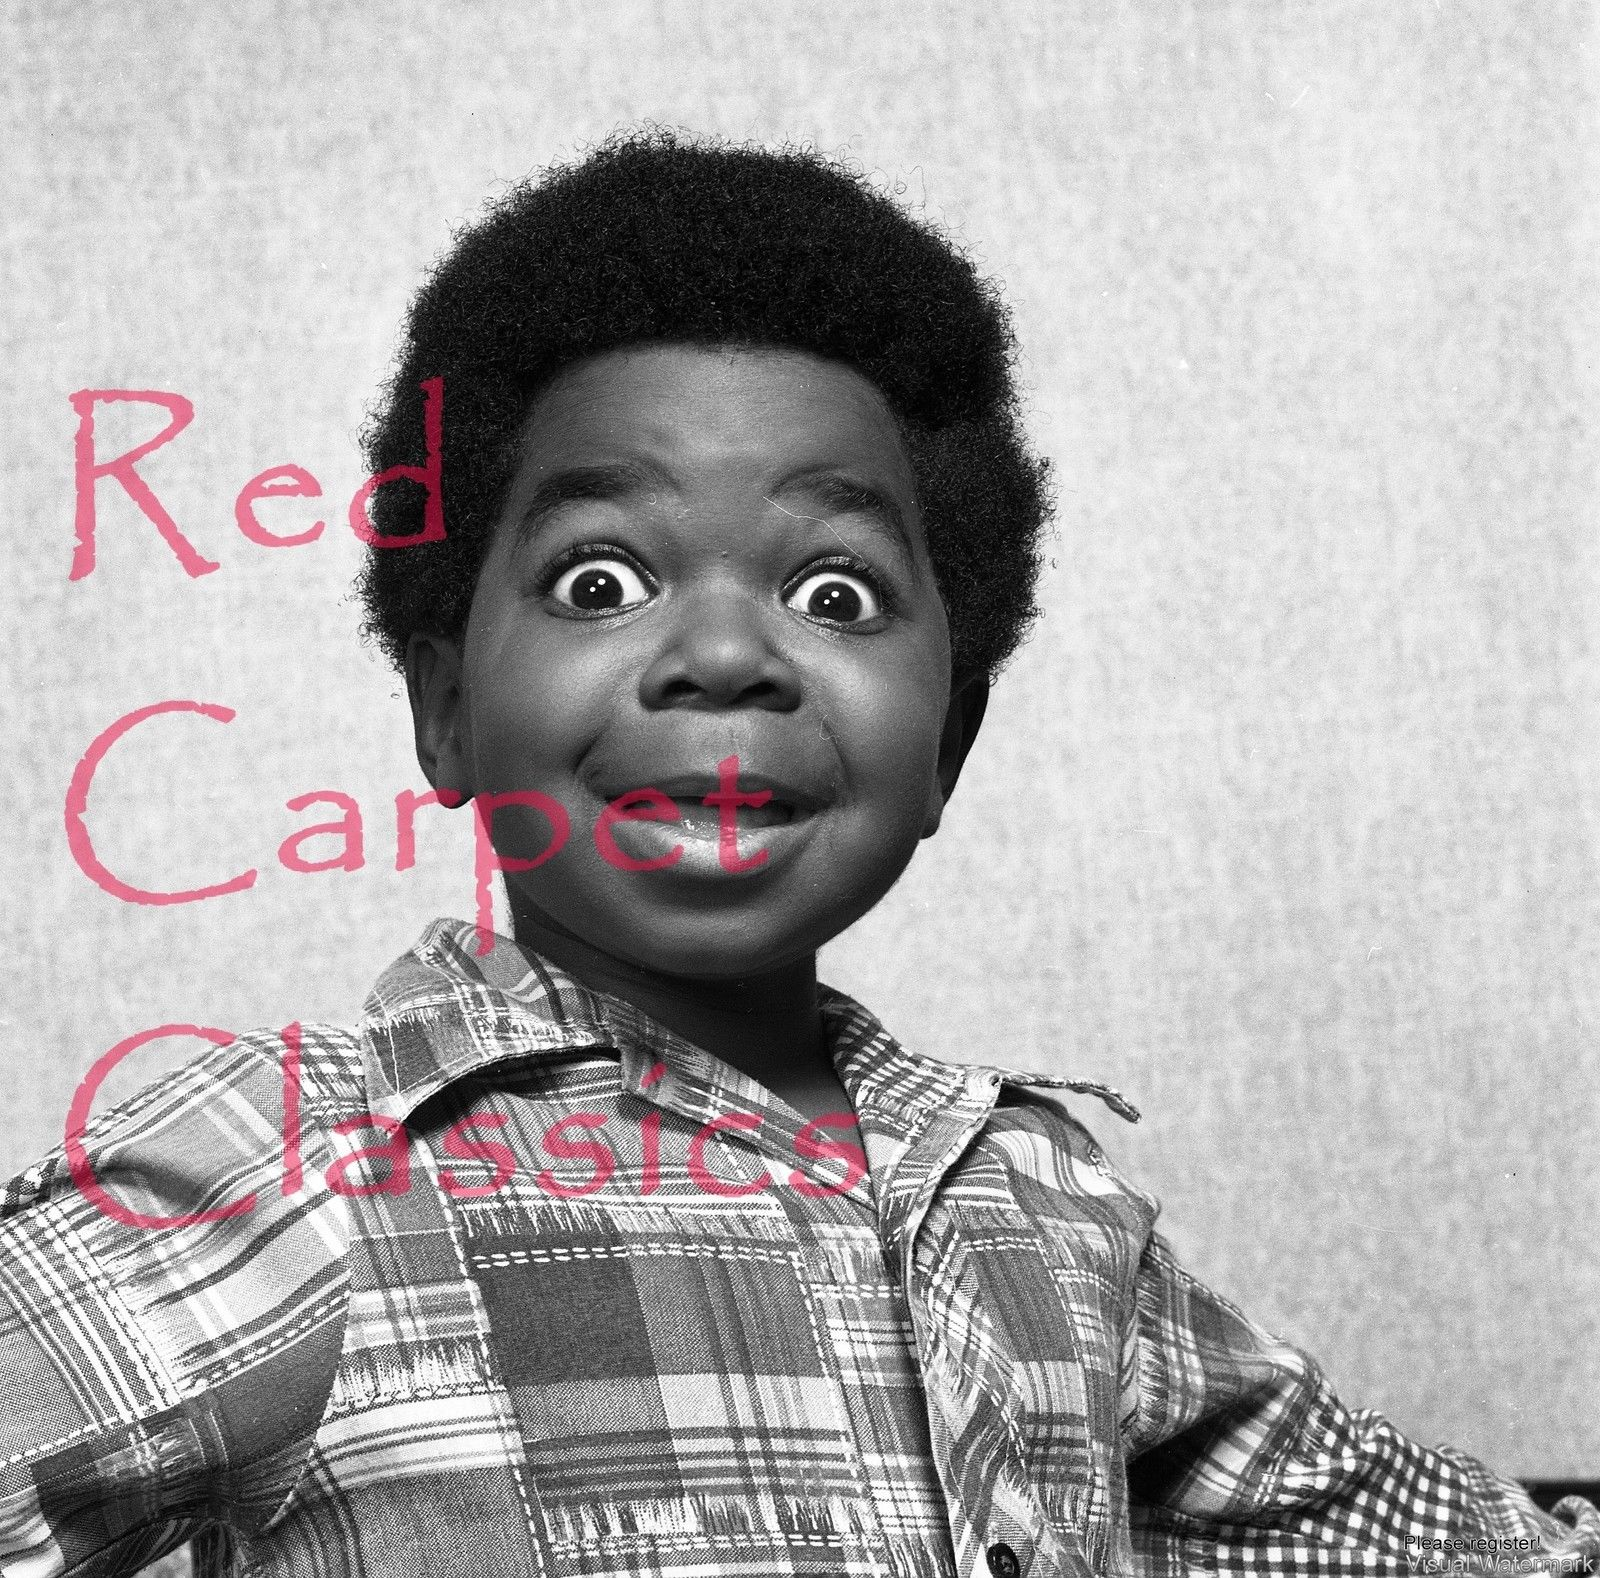 lassic_Gary_Coleman_DIFF_RENT_STROKES_-_120mm_Film_Negative